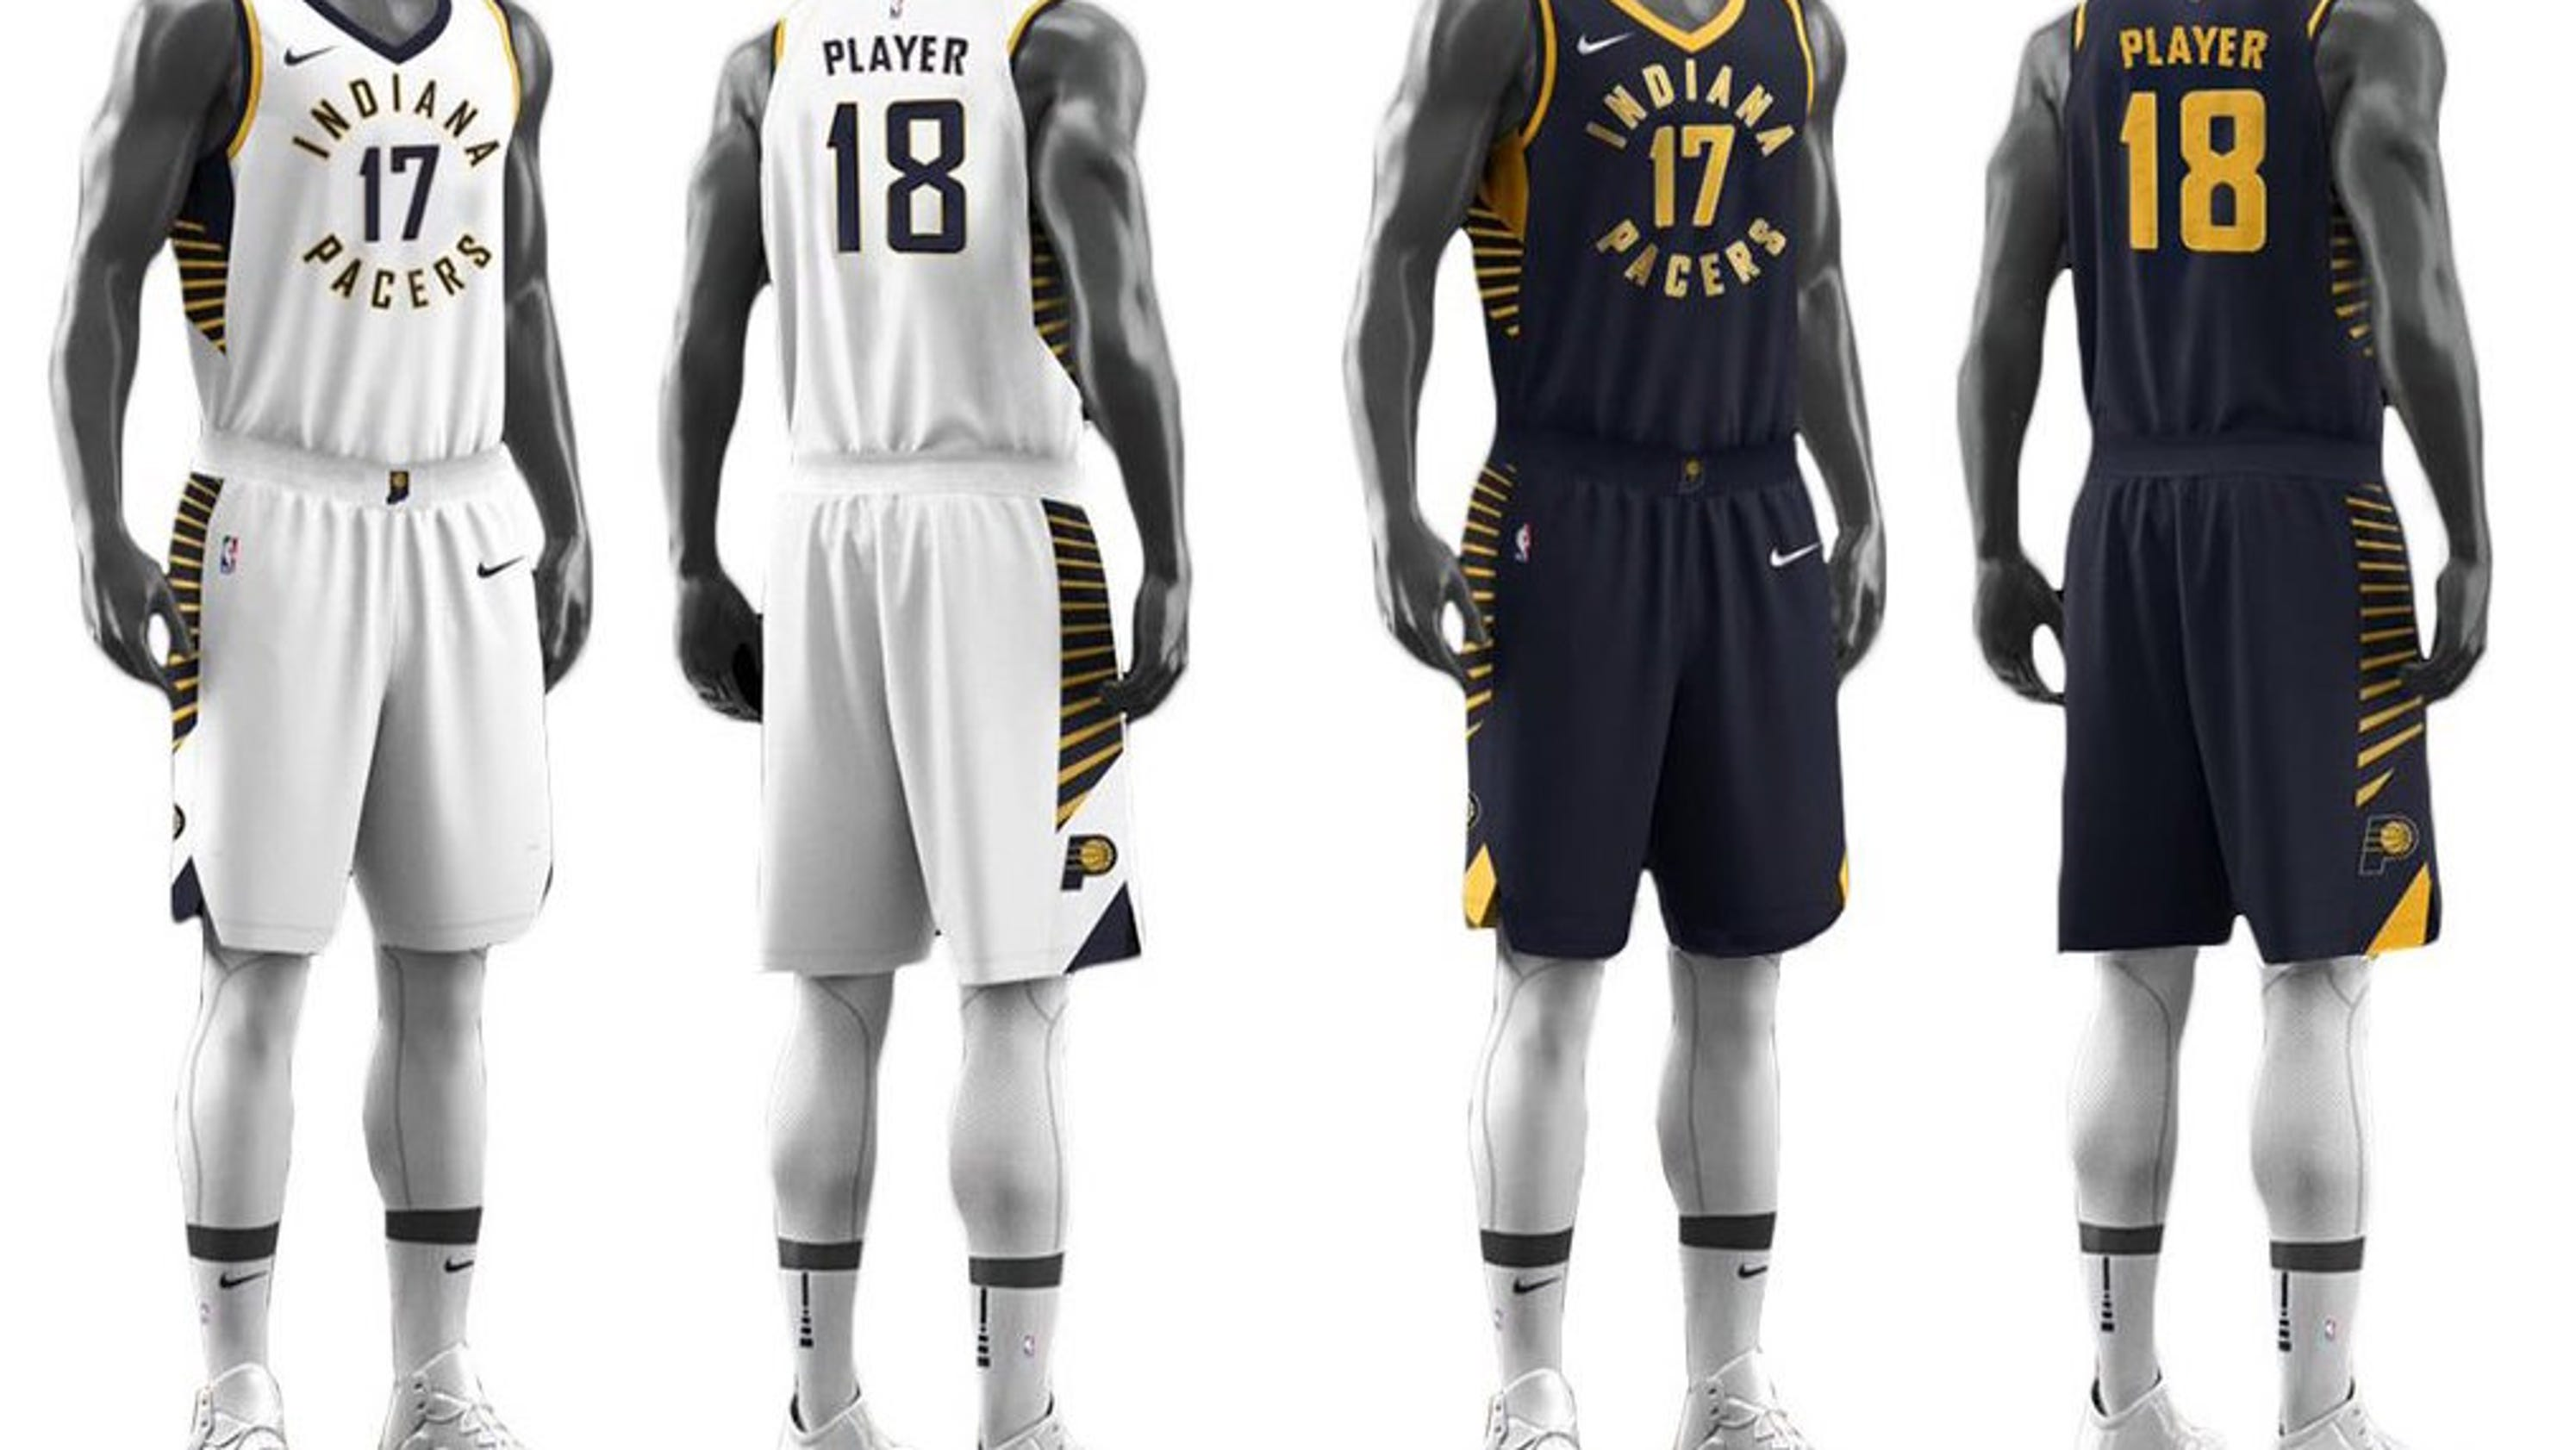 New Pacers Jerseys Are Either Great Or Awful